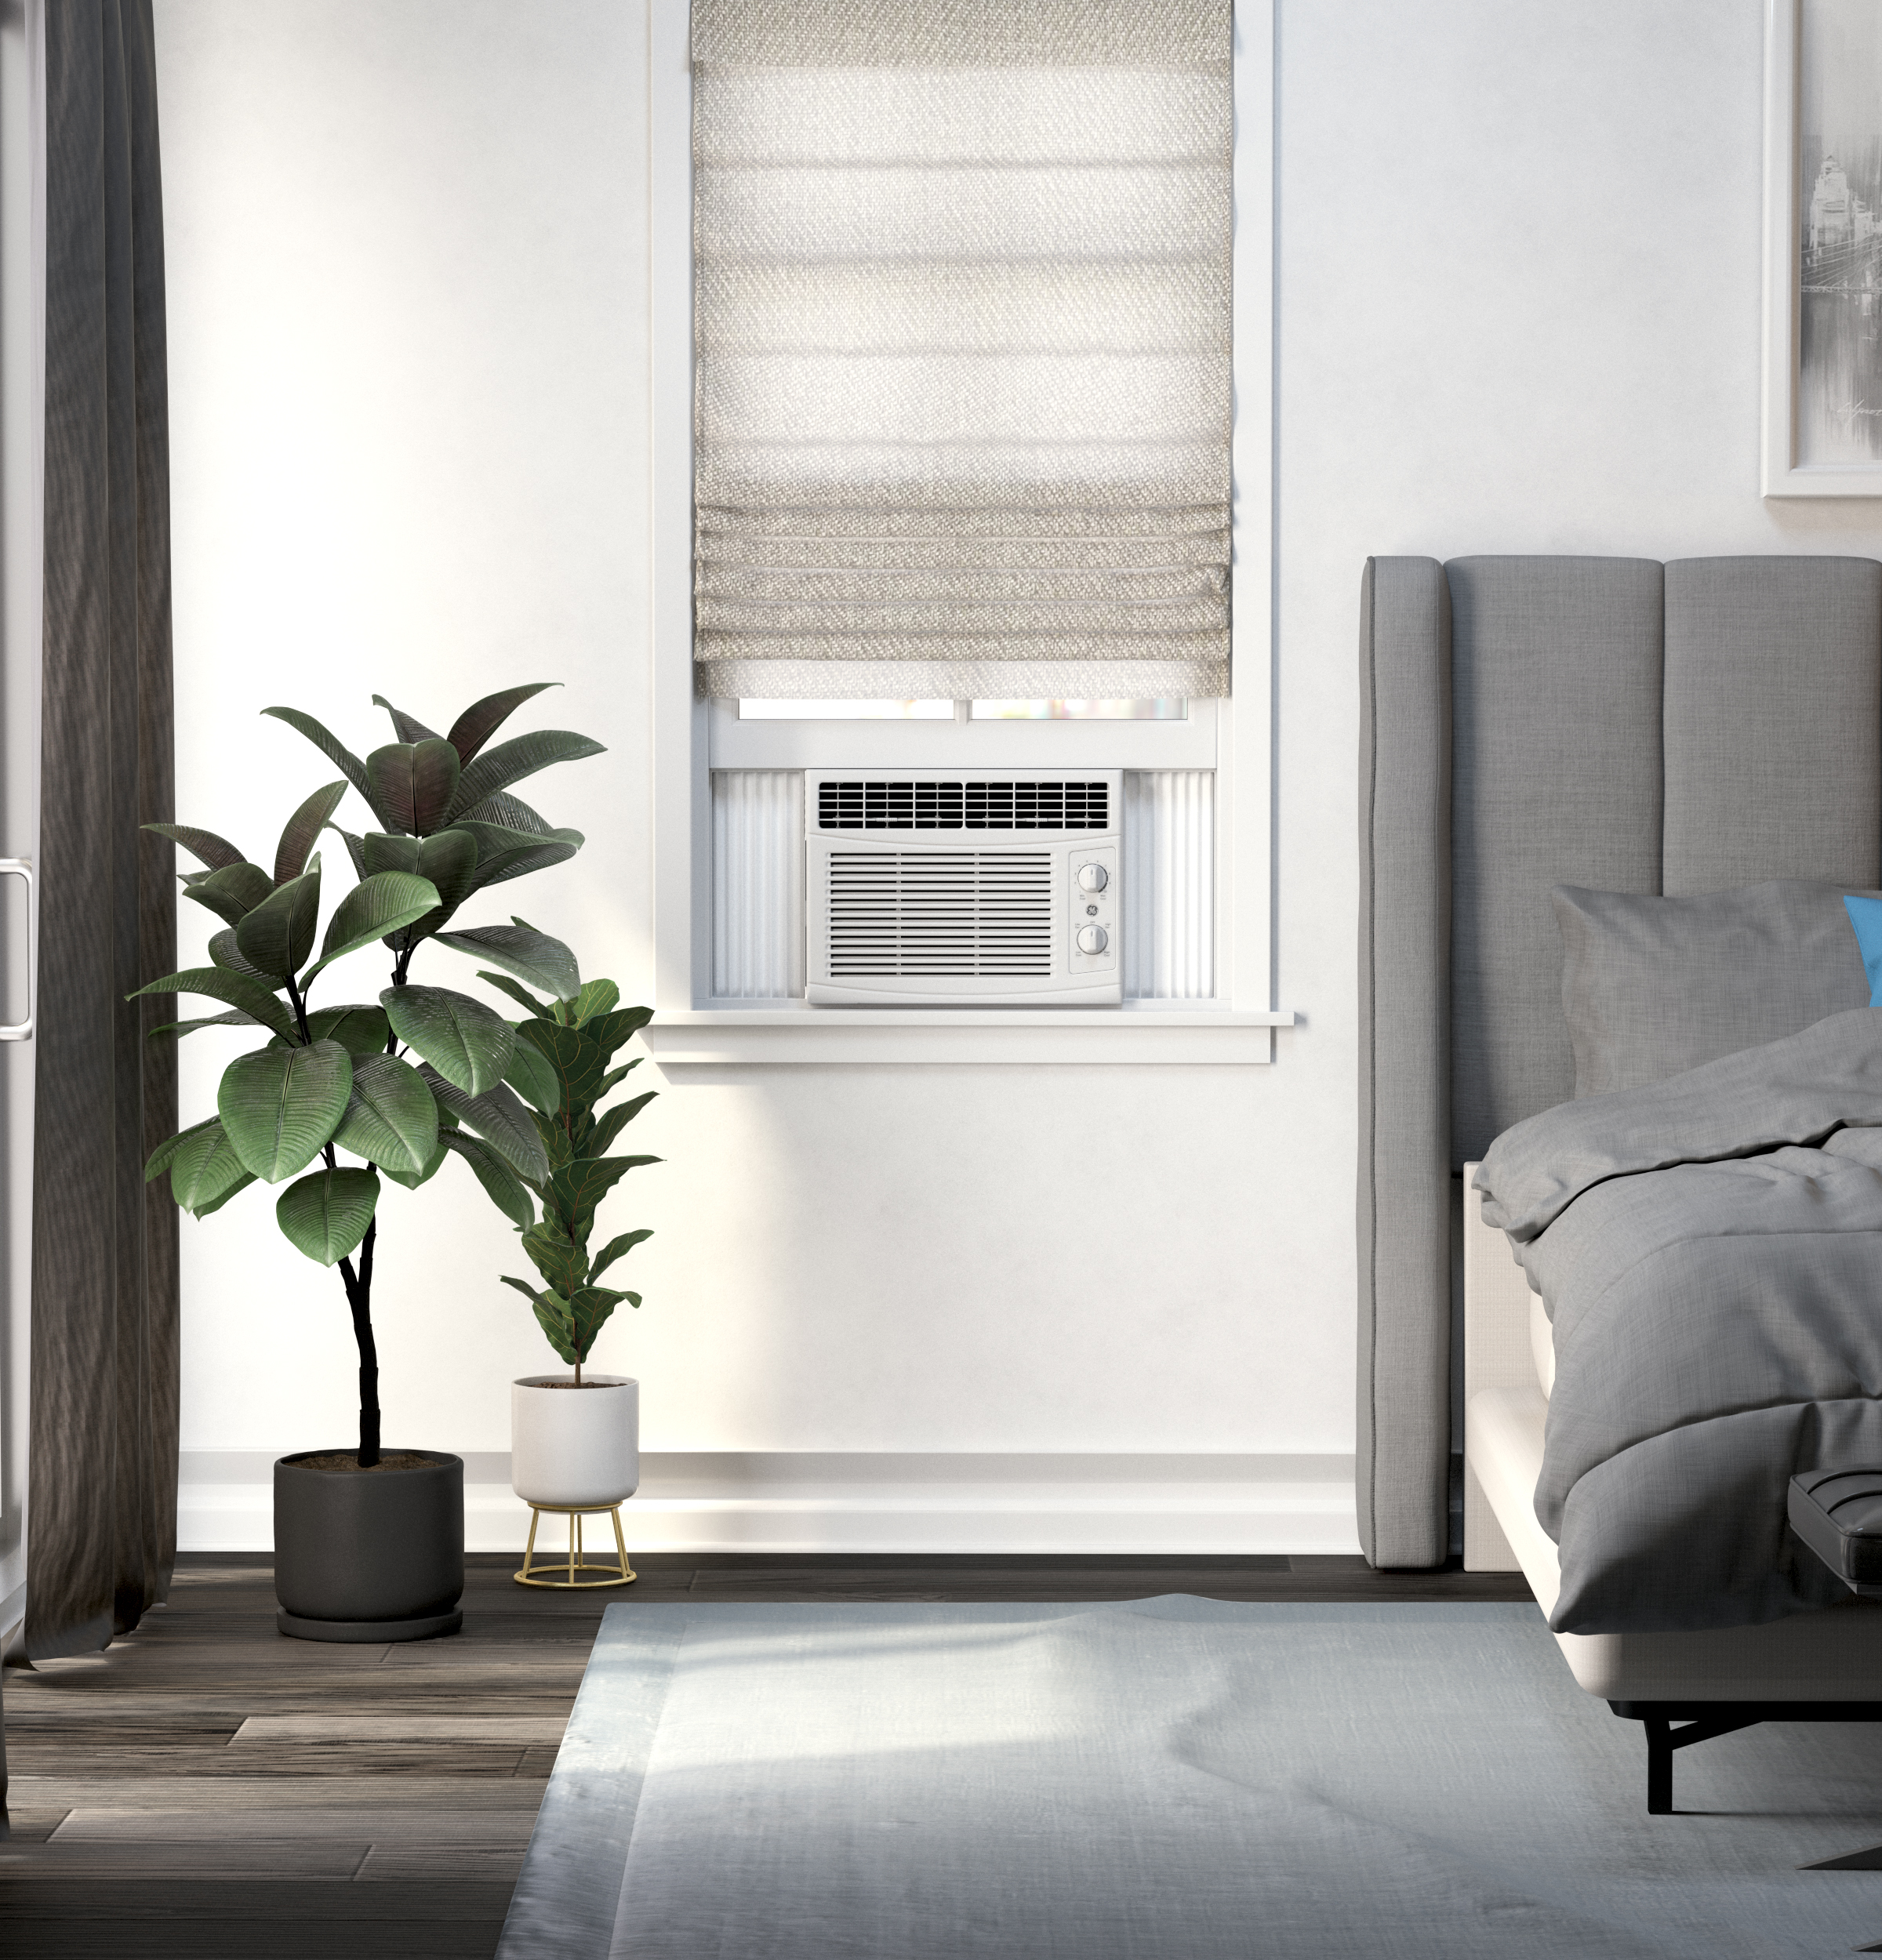 Model: AHEC05AC | GE GE® 5,050 BTU Mechanical Window Air Conditioner for Small Rooms up to 150 sq. ft.